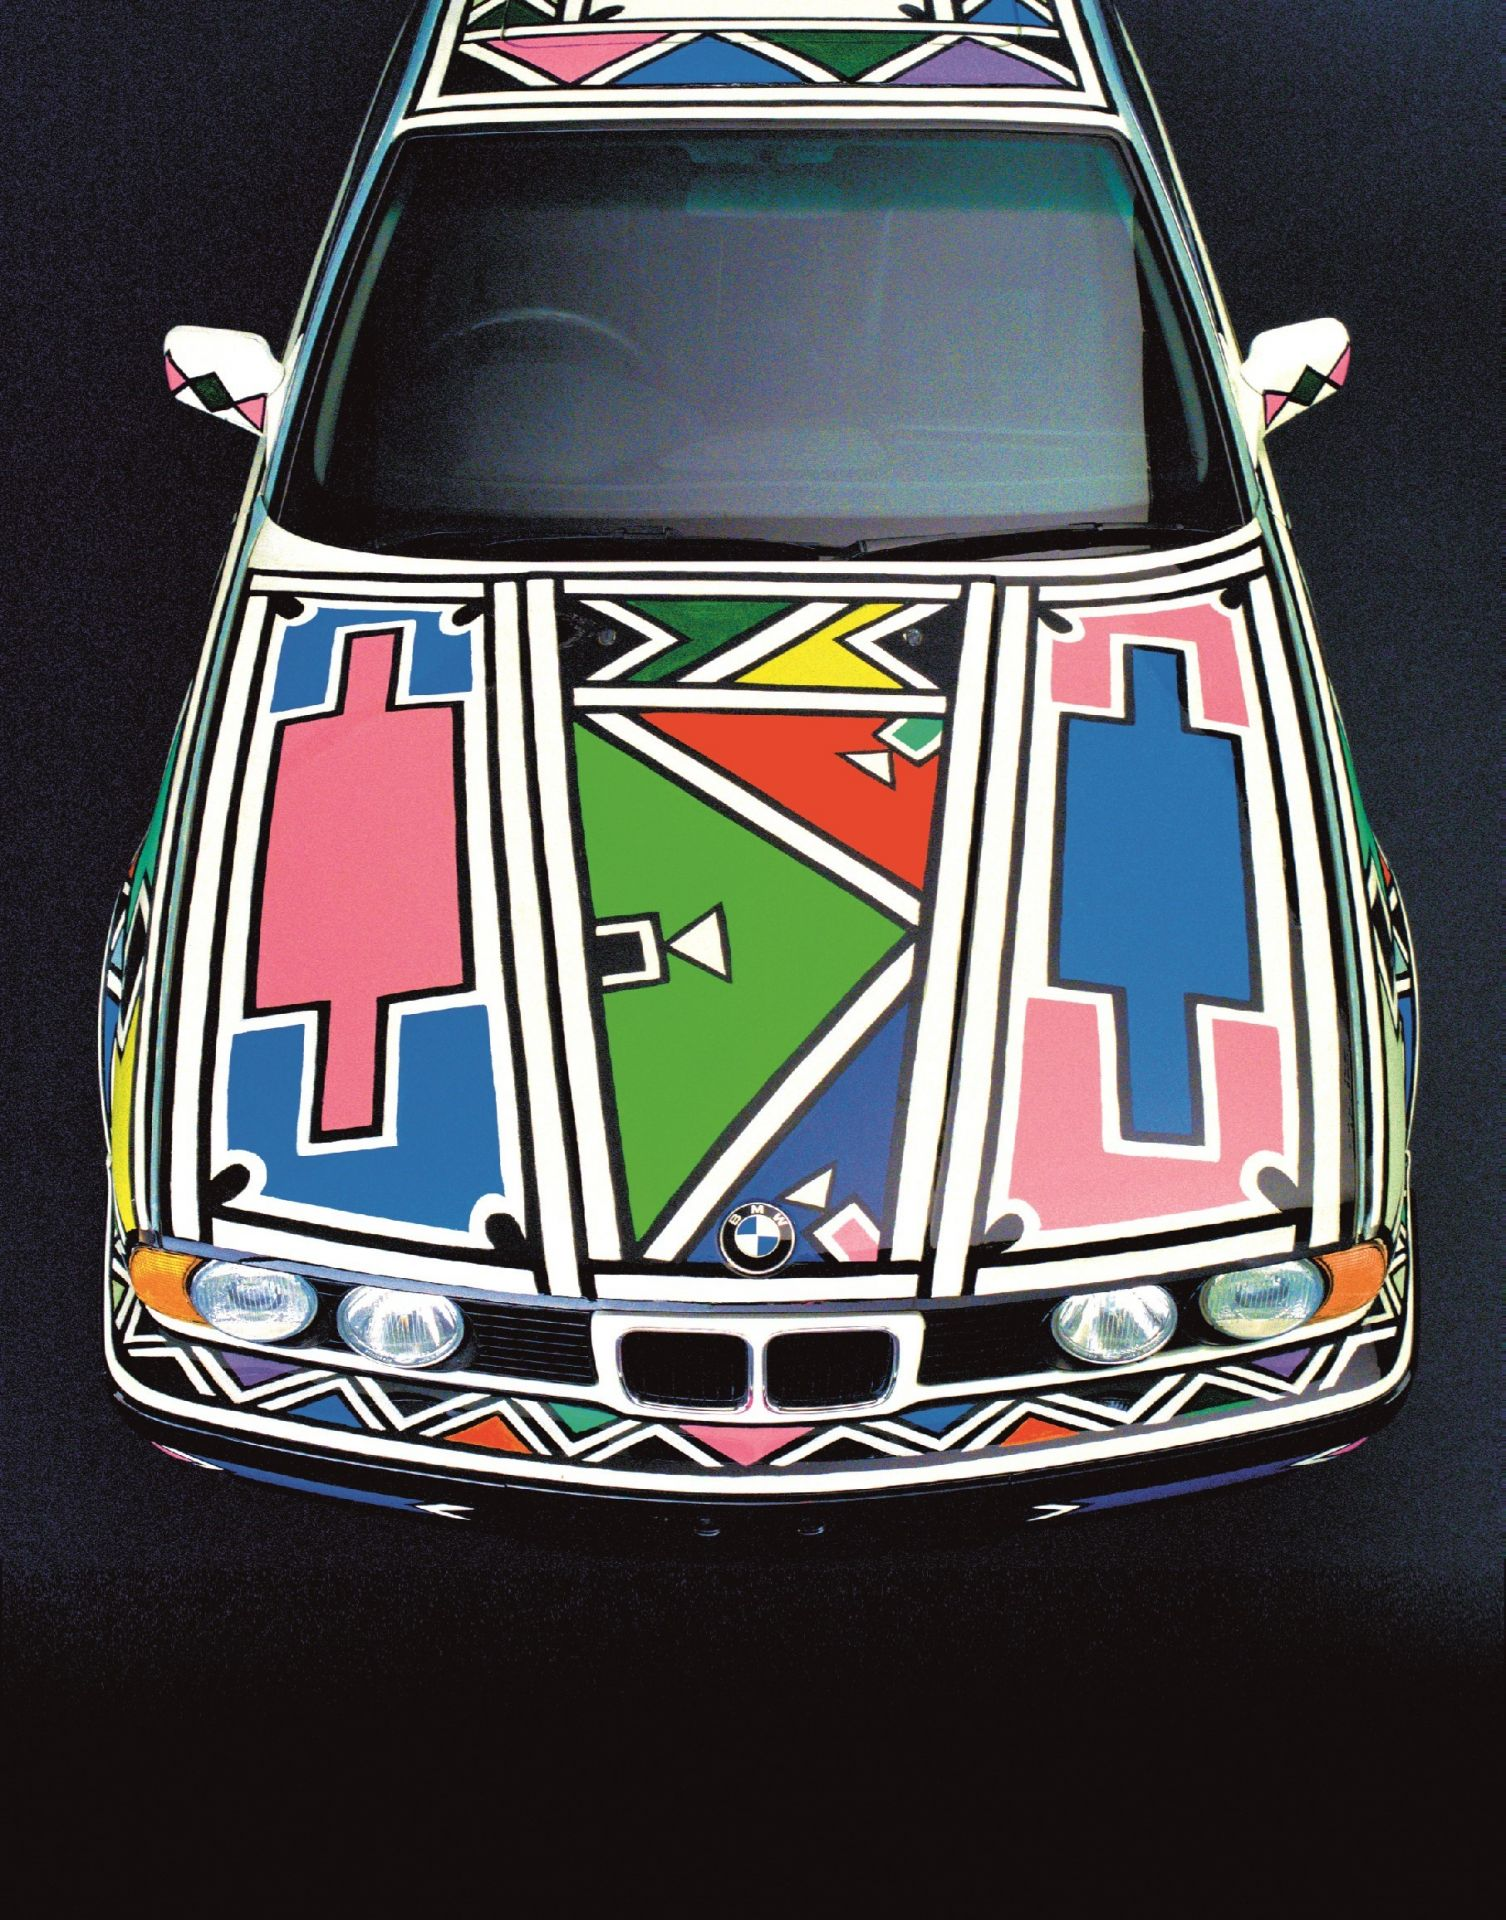 e5a4189e890 Esther Mahlangu (b. 1935)